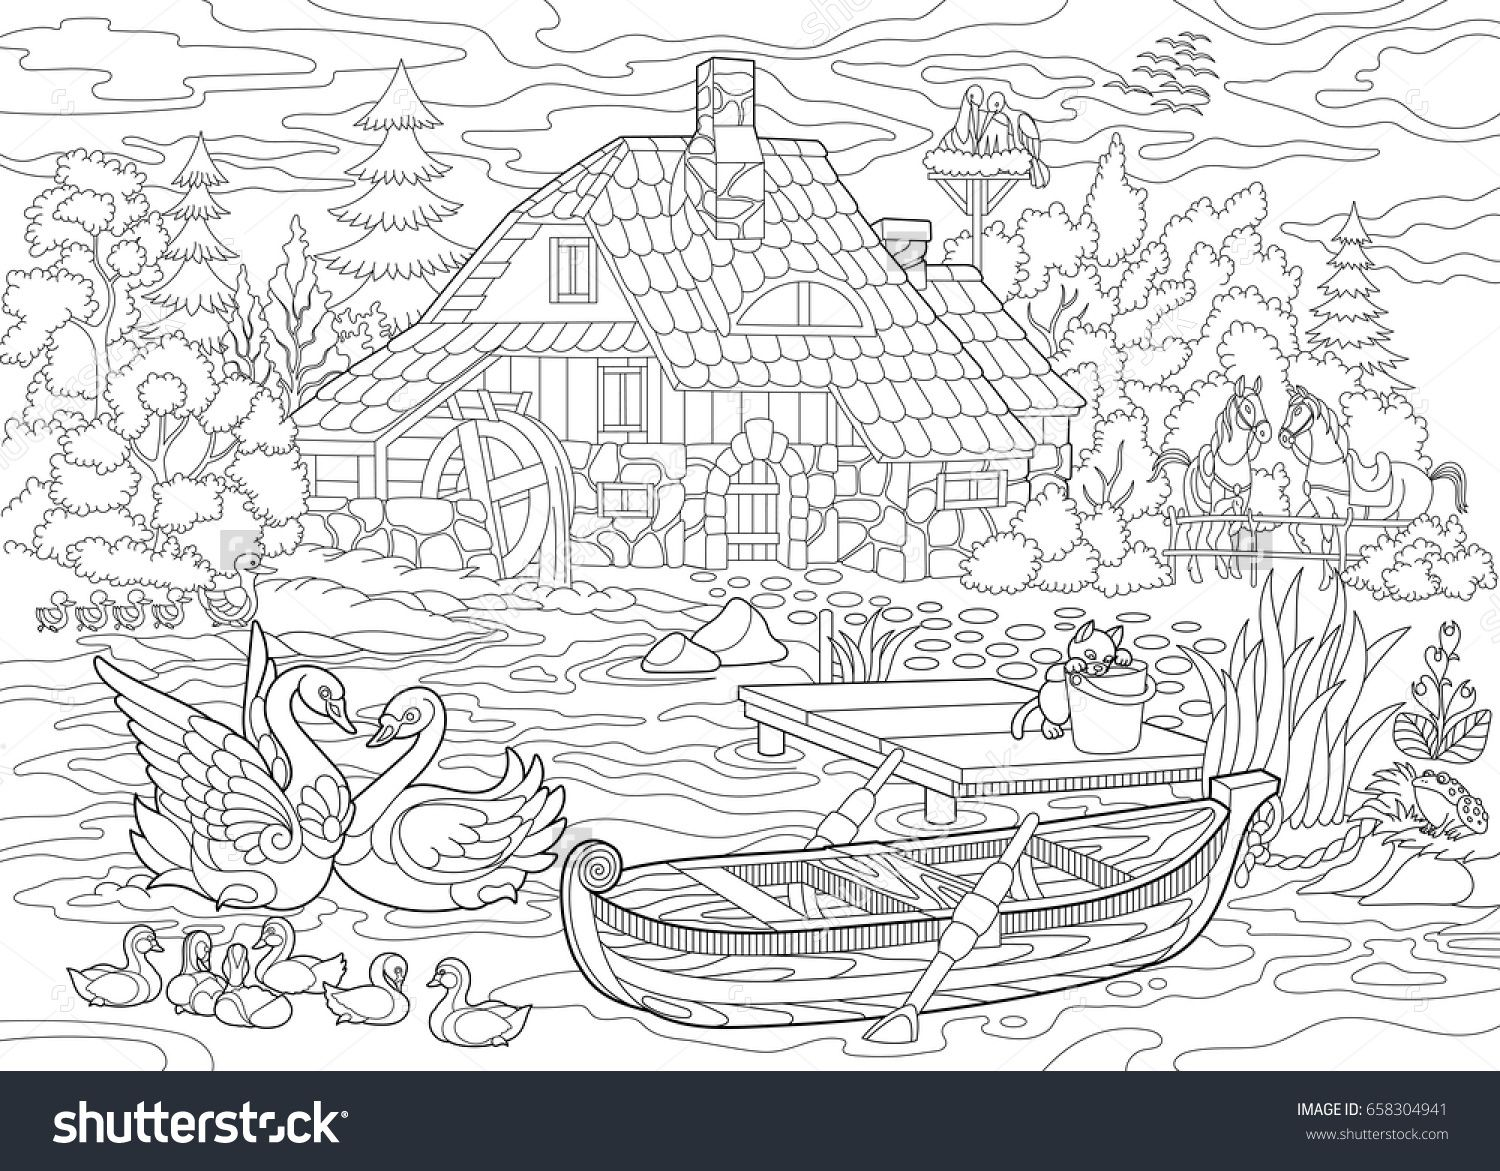 Coloring Book Page Of Rural Landscape Farm House Ducks Kitten Swans Horses Frog Storks Flock Of Seag Coloring Books Adult Coloring Pages